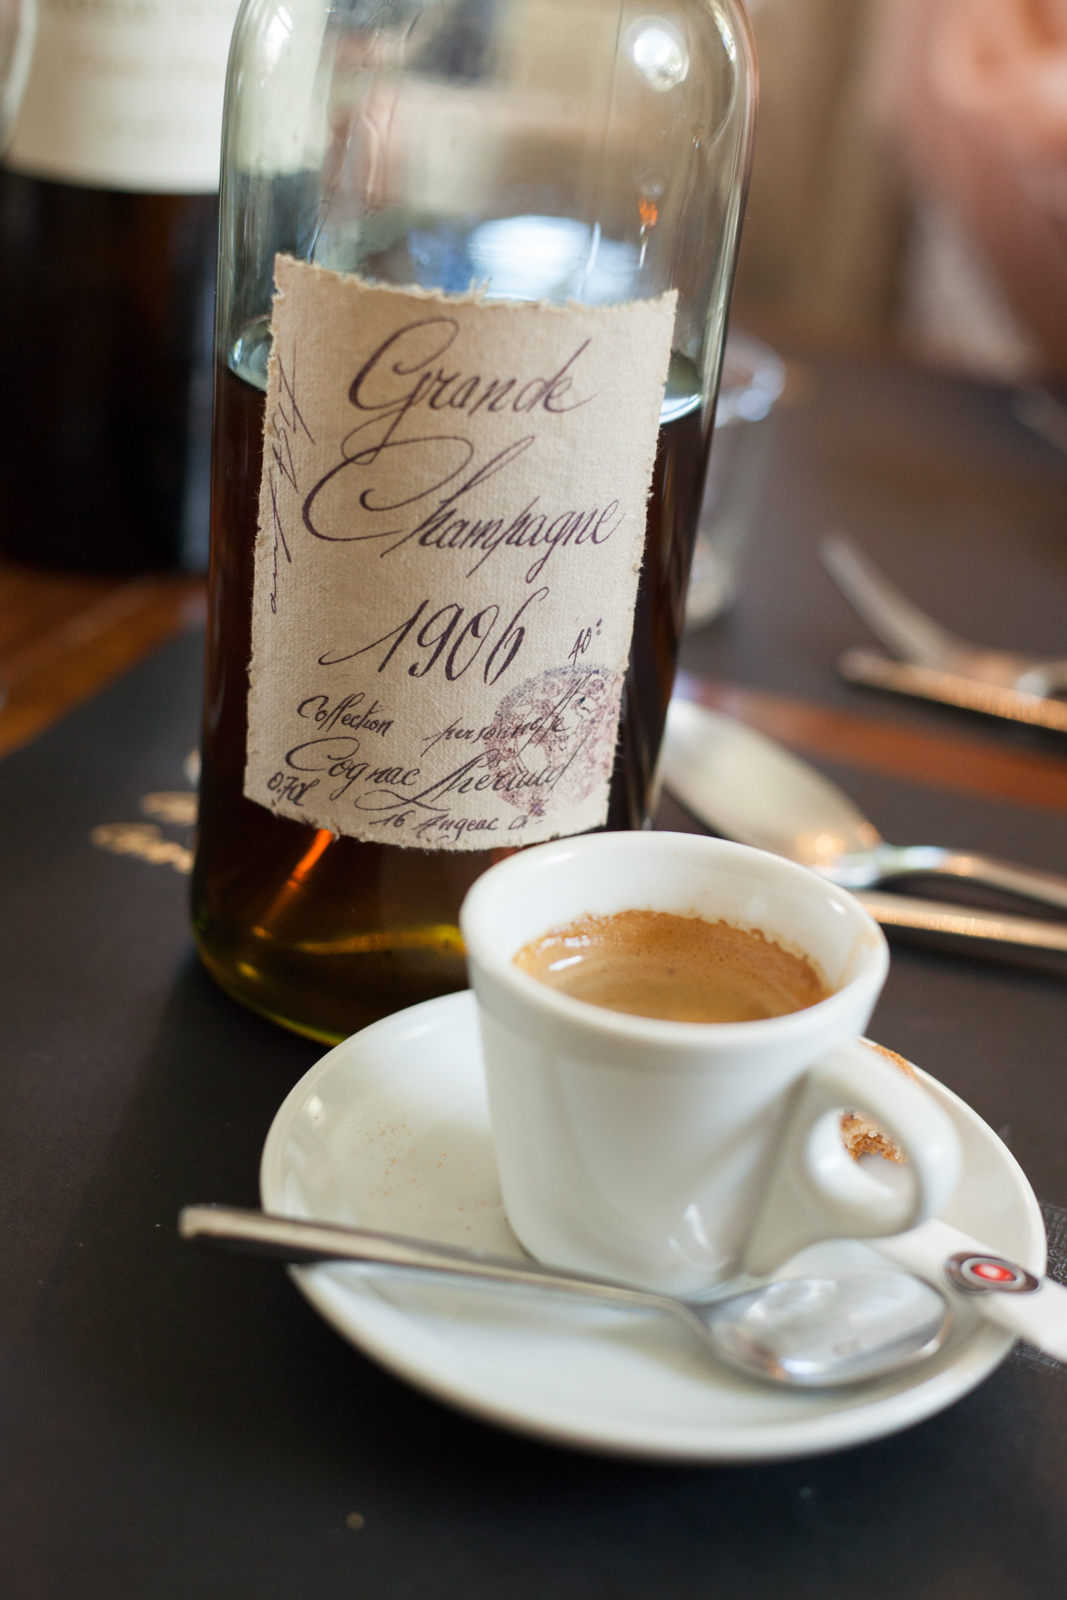 A bottle of 1906 Grand Champagne Cognac after lunch with an espresso, from Cognac Lhéraud. ©Kevin Day/Opening a Bottle